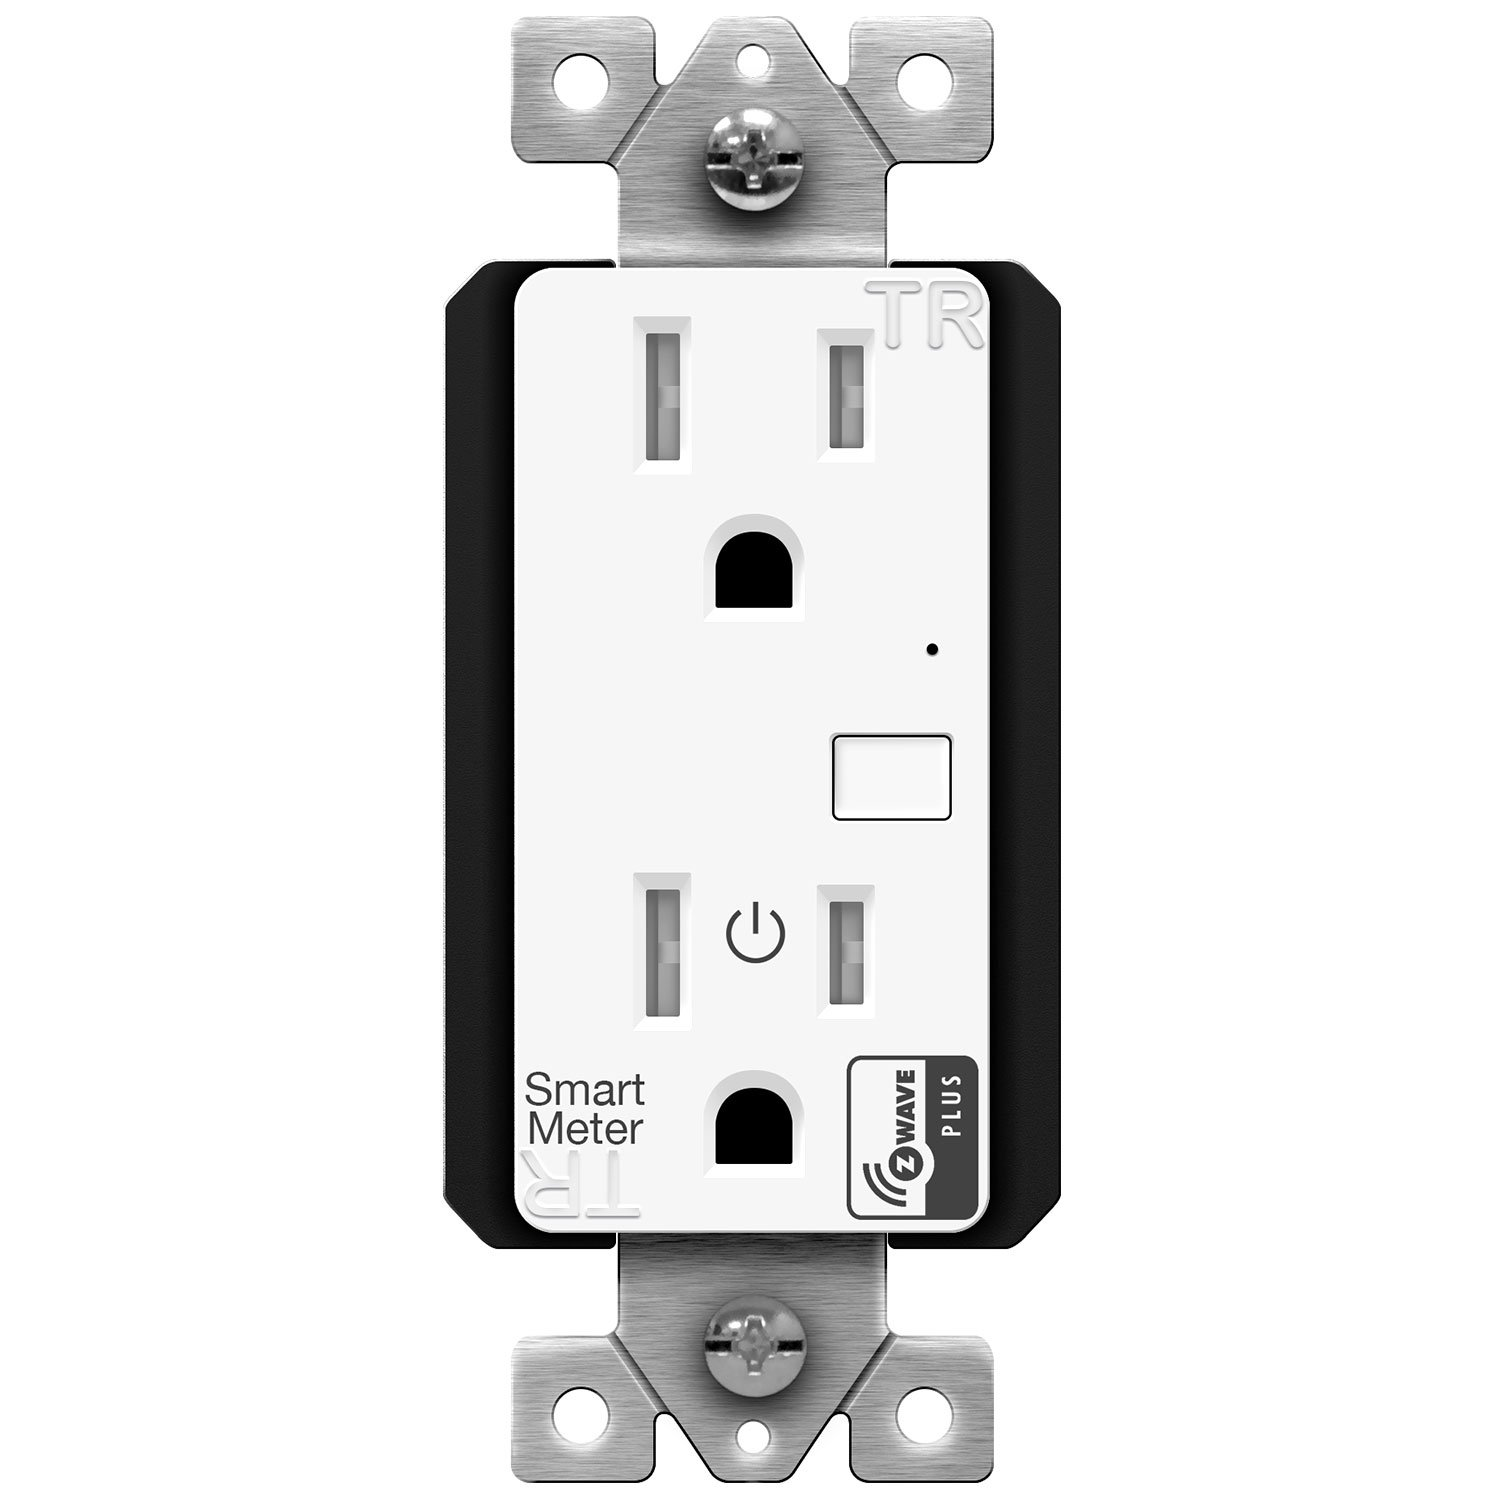 Enerwave ZW15RM-PLUS Z-Wave Plus Wall Outlet with Smart Meter Energy Monitor, Smart Outlet, Z-Wave Outlet, App-Controlled Outlet for Z-Wave Home Automation, Interchangeable Face Covers